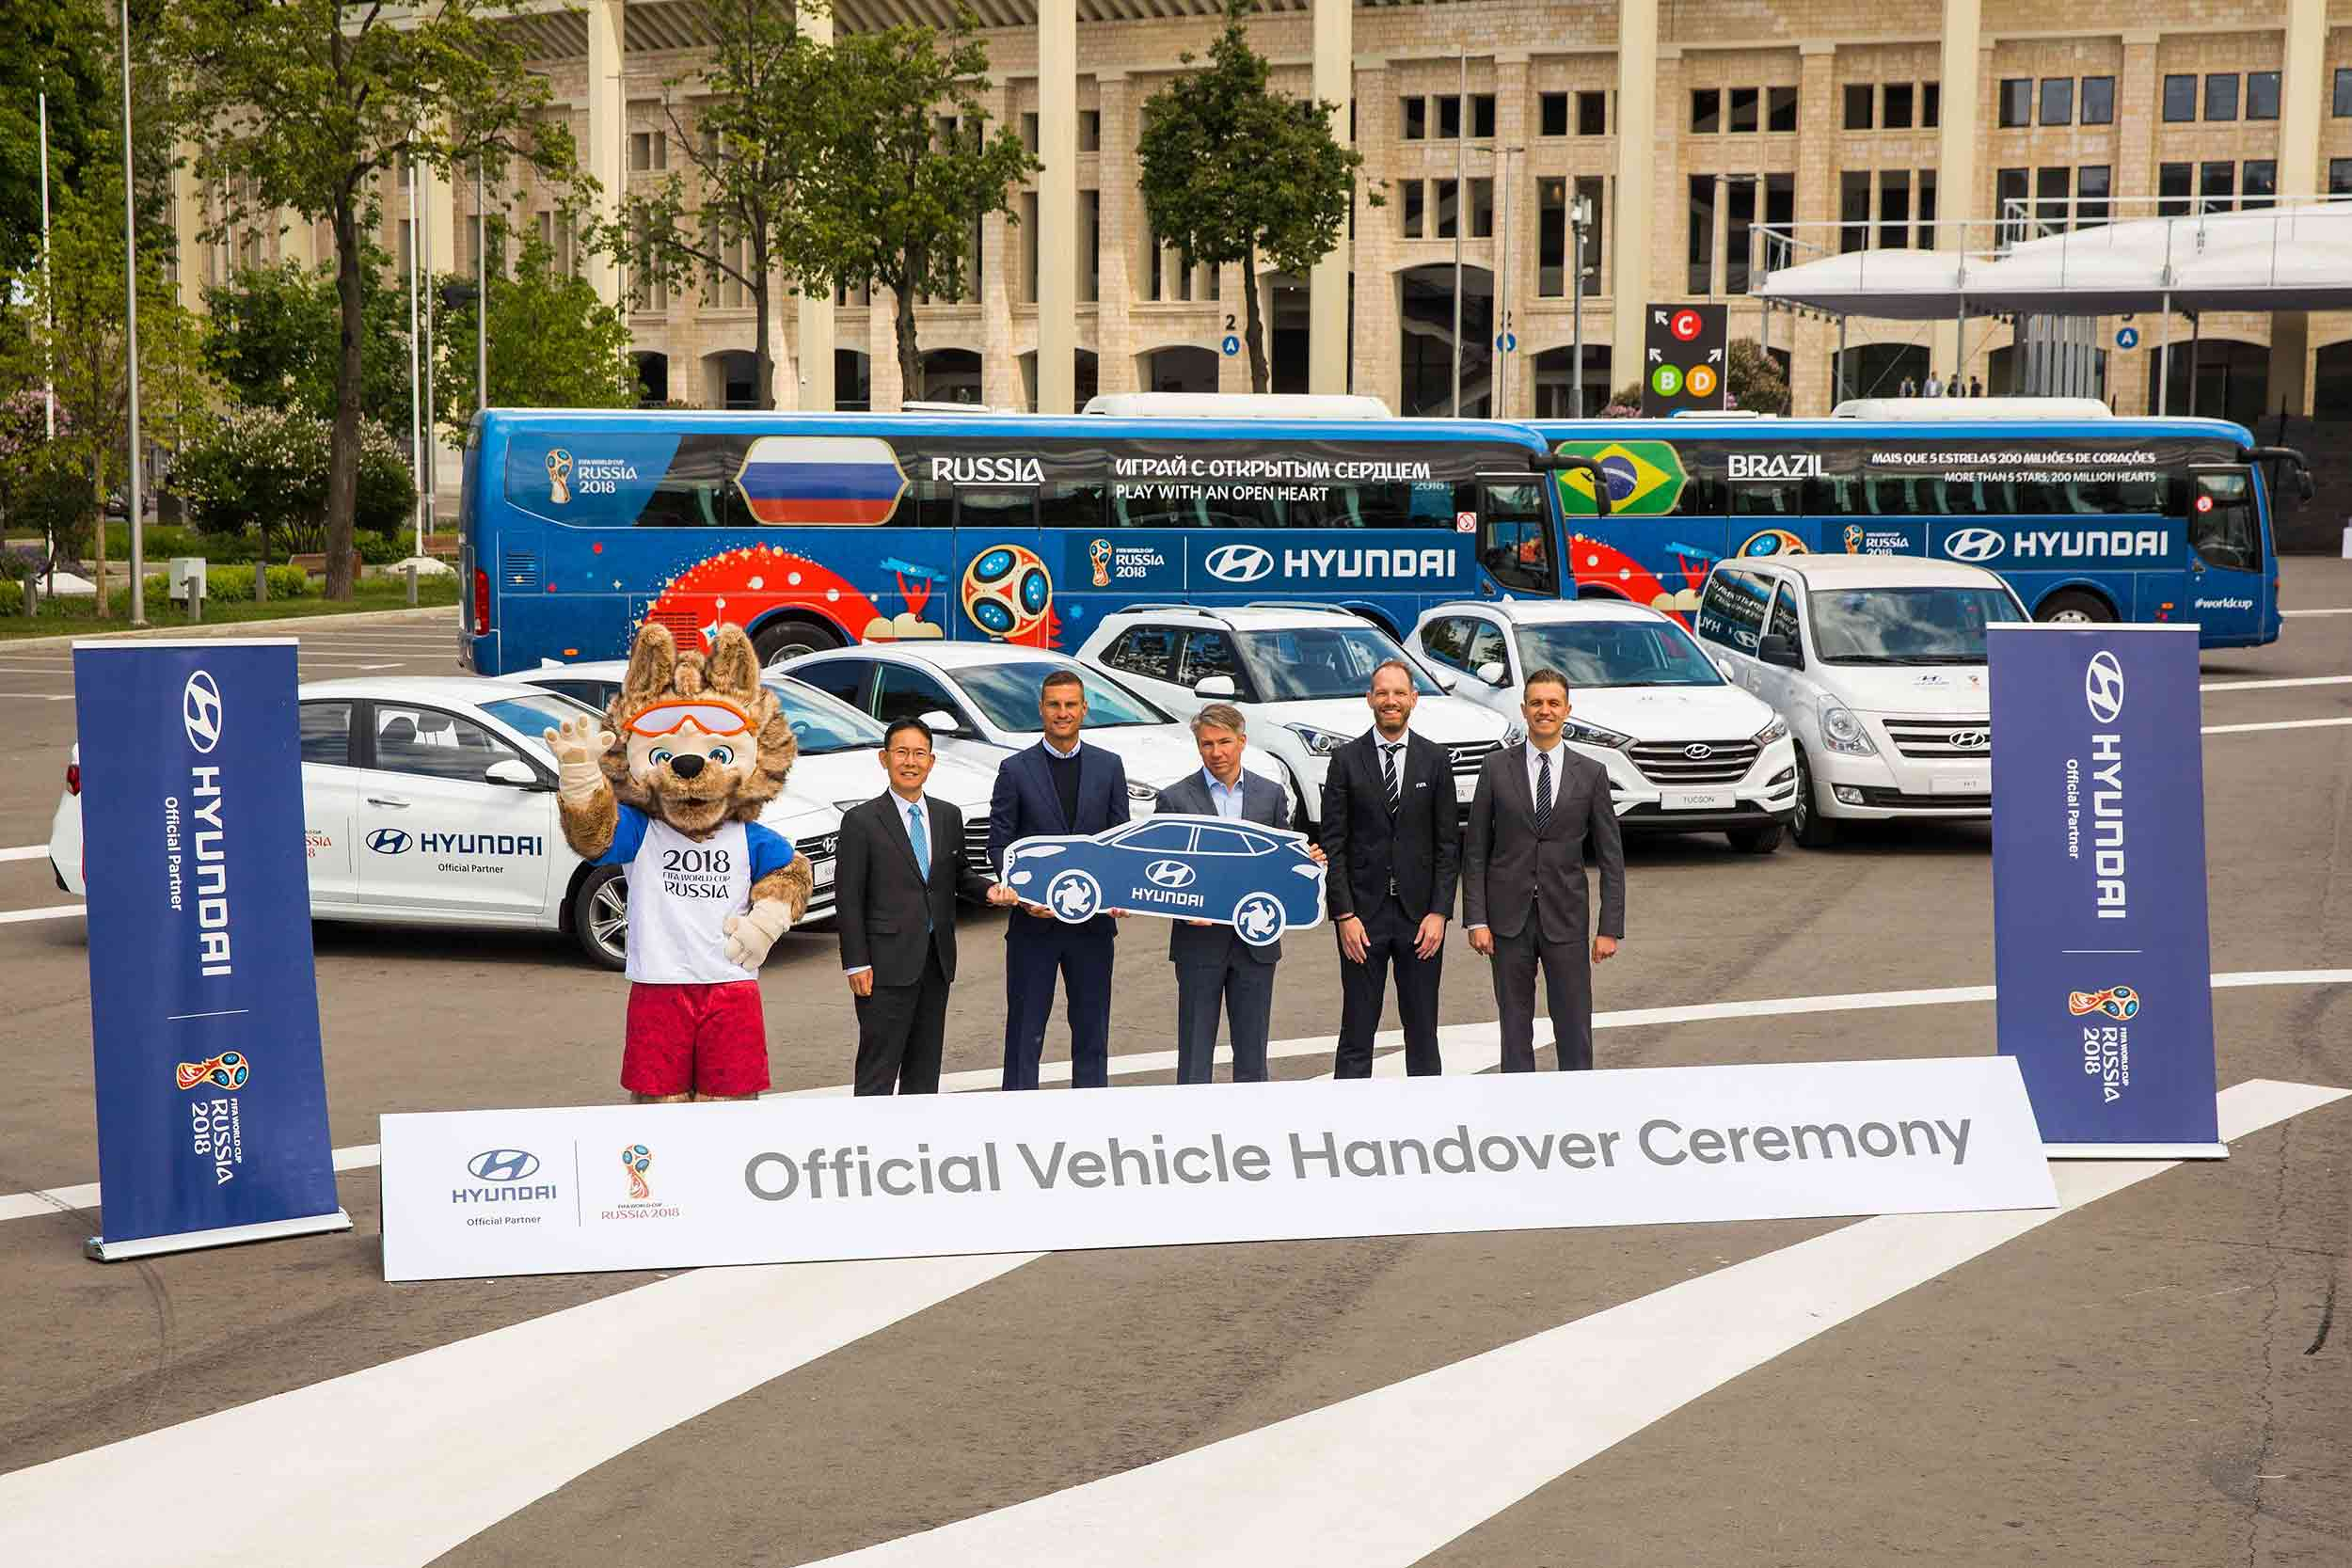 2018 World Cup Hyundai handover ceremony